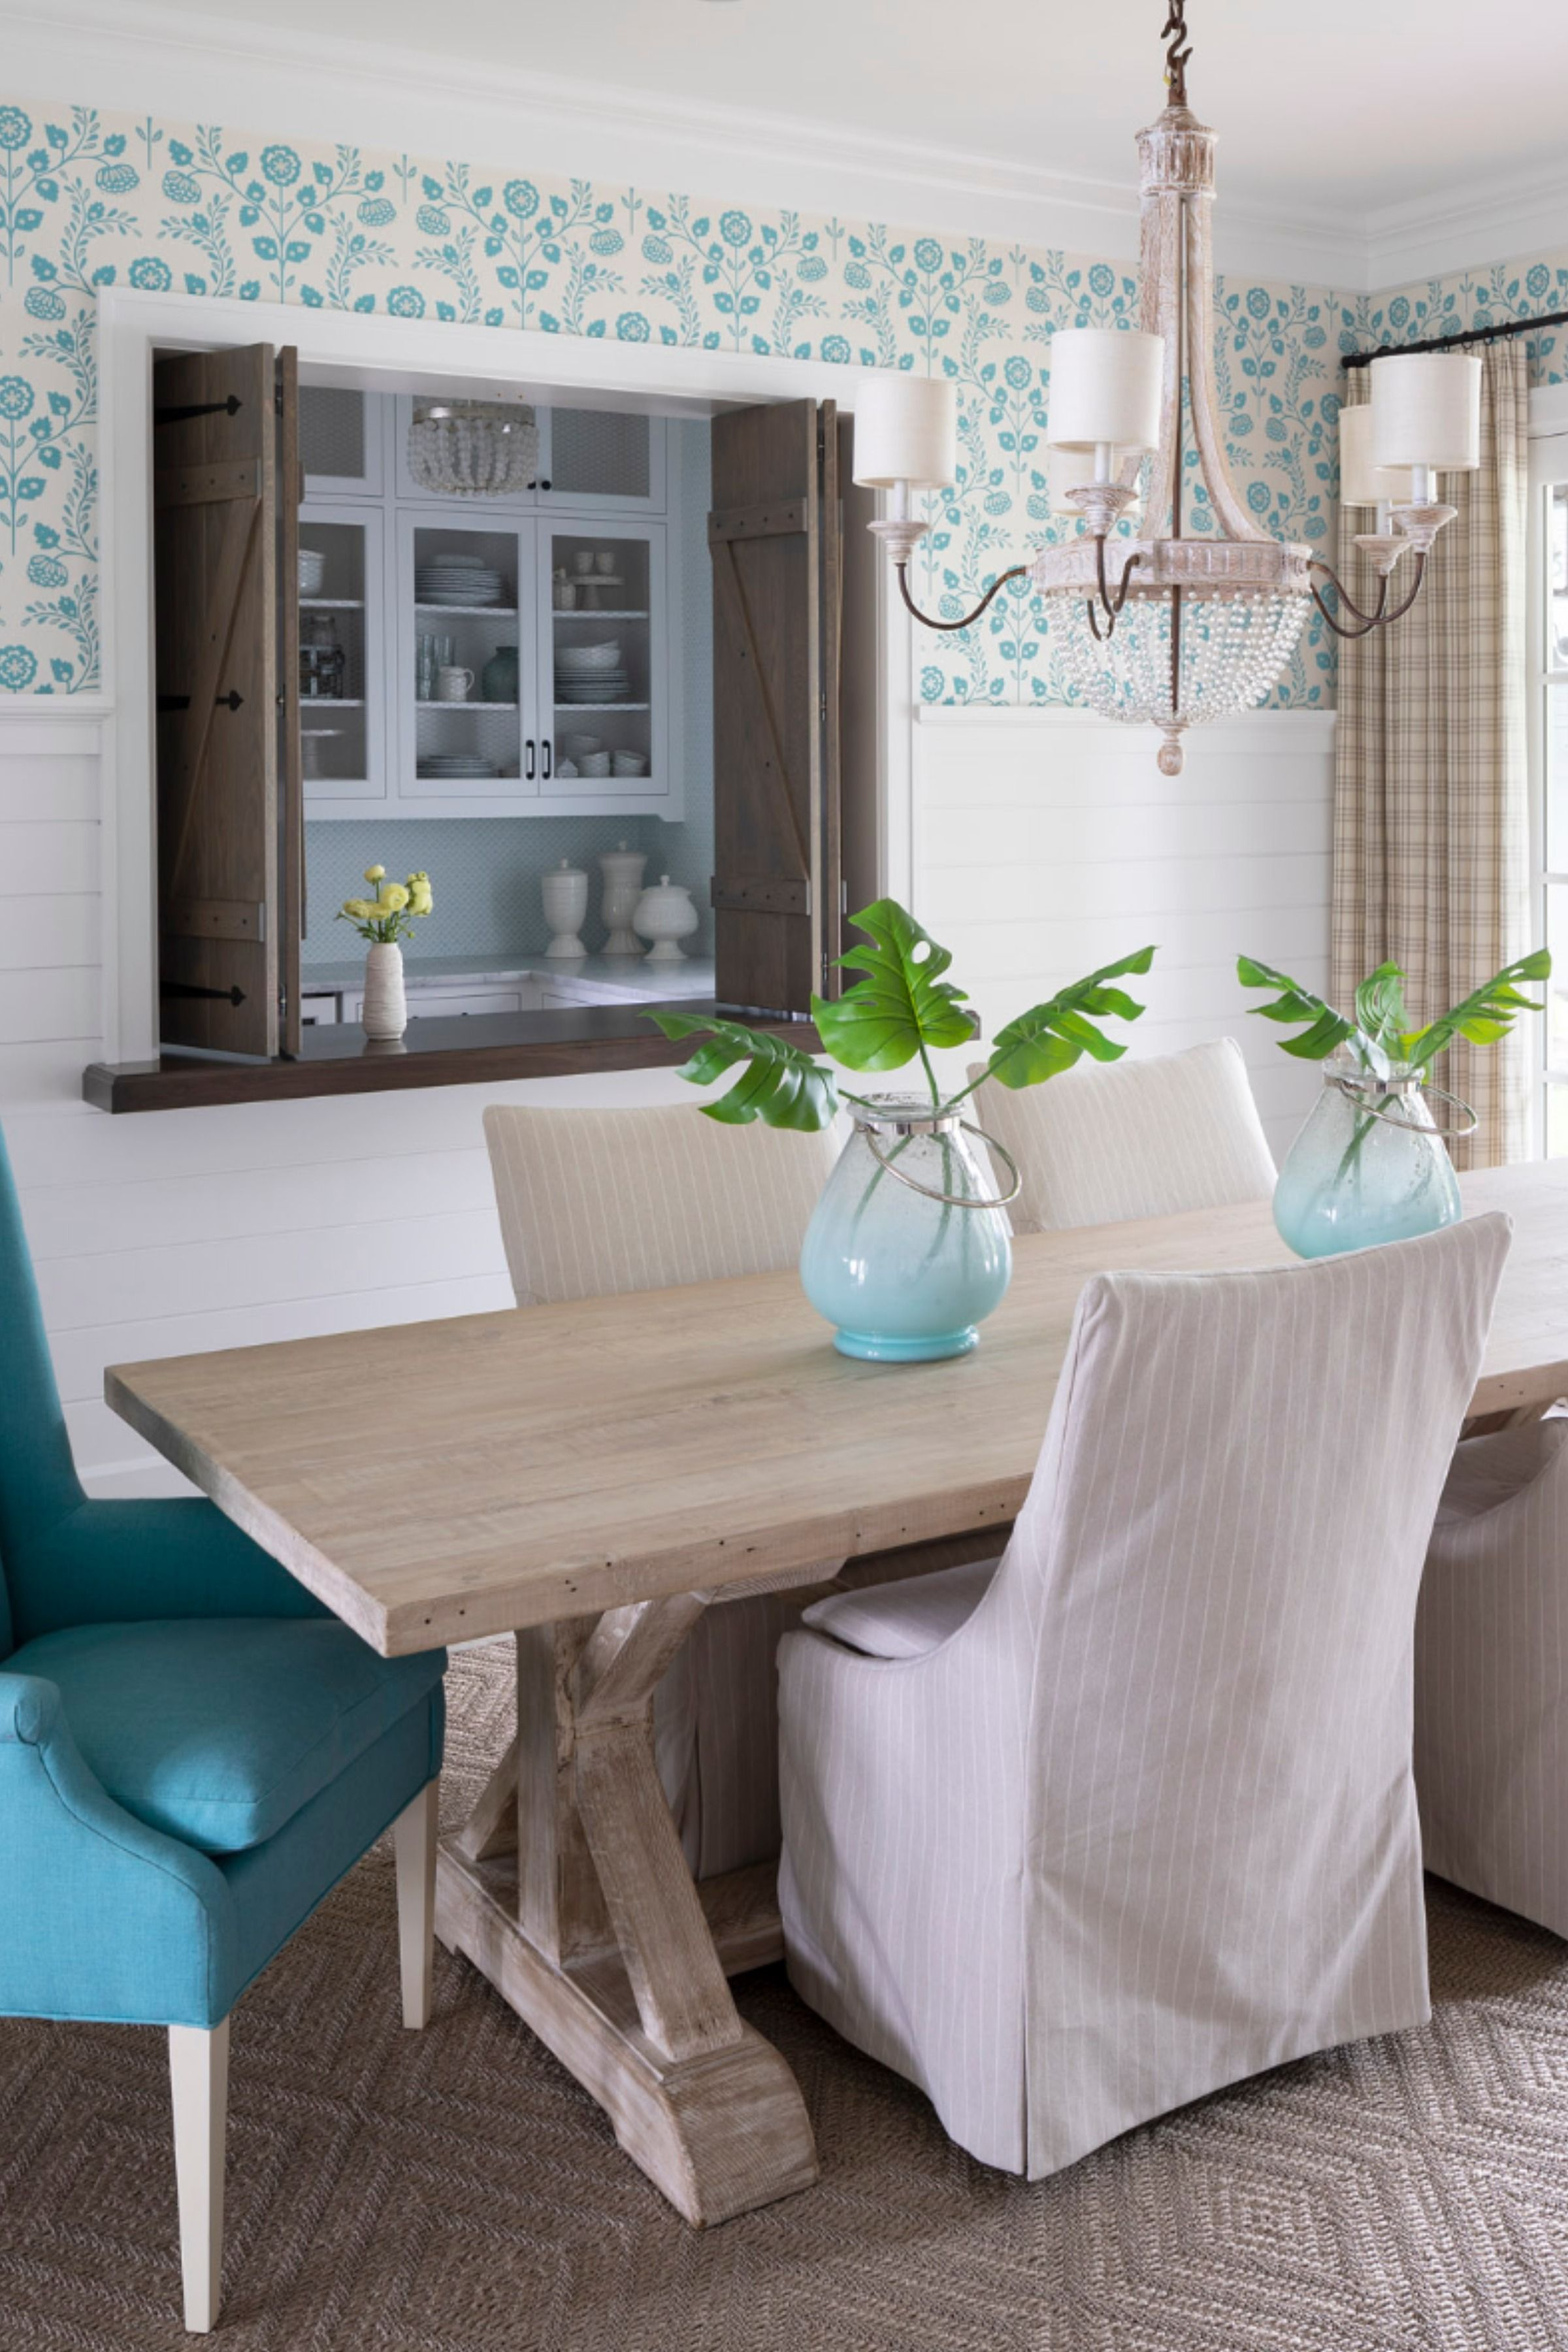 This home on Wayzata Bay features several rooms with stunning wallpaper - we can't pick a favorite! But it may just be the dining room. + how neat of a feature is that indoor window? A genius idea for entertaining and hosting! #DiningRoomDecor #DiningRoomIdeas #DiningRoomDesign #DiningTable